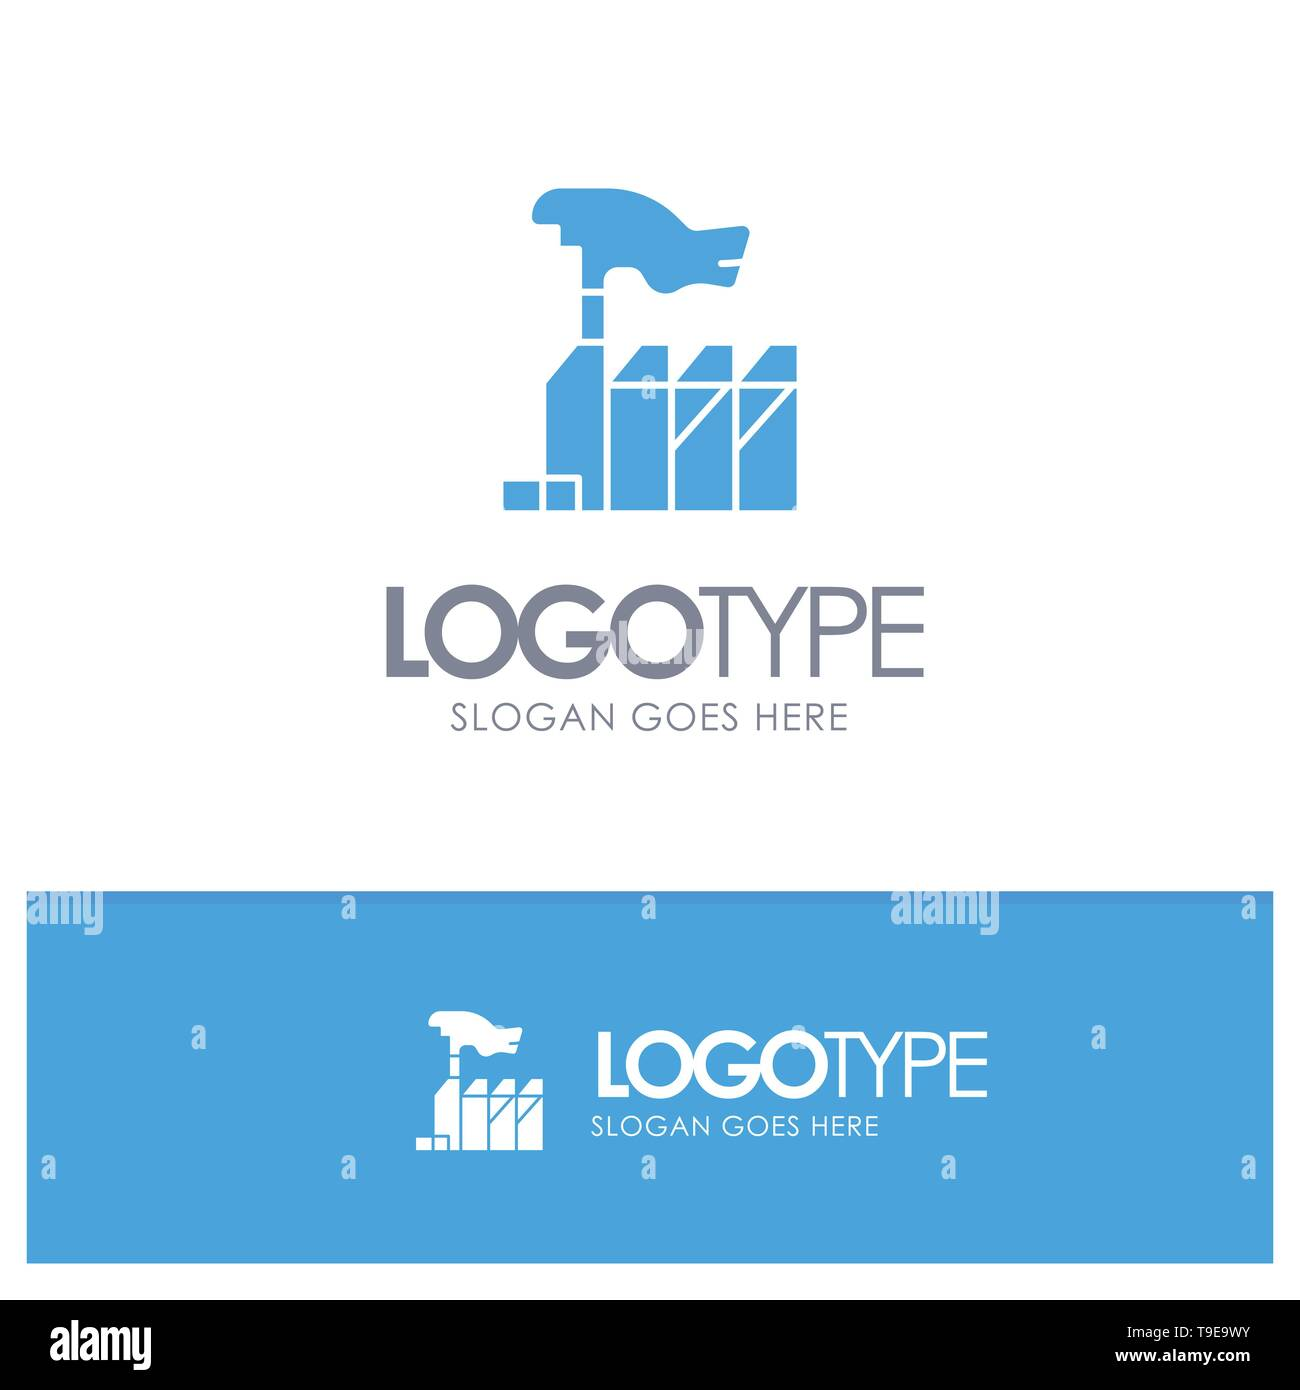 Autocracy, Despotism, Domination, Interest, Lobbying Blue Solid Logo with place for tagline - Stock Image